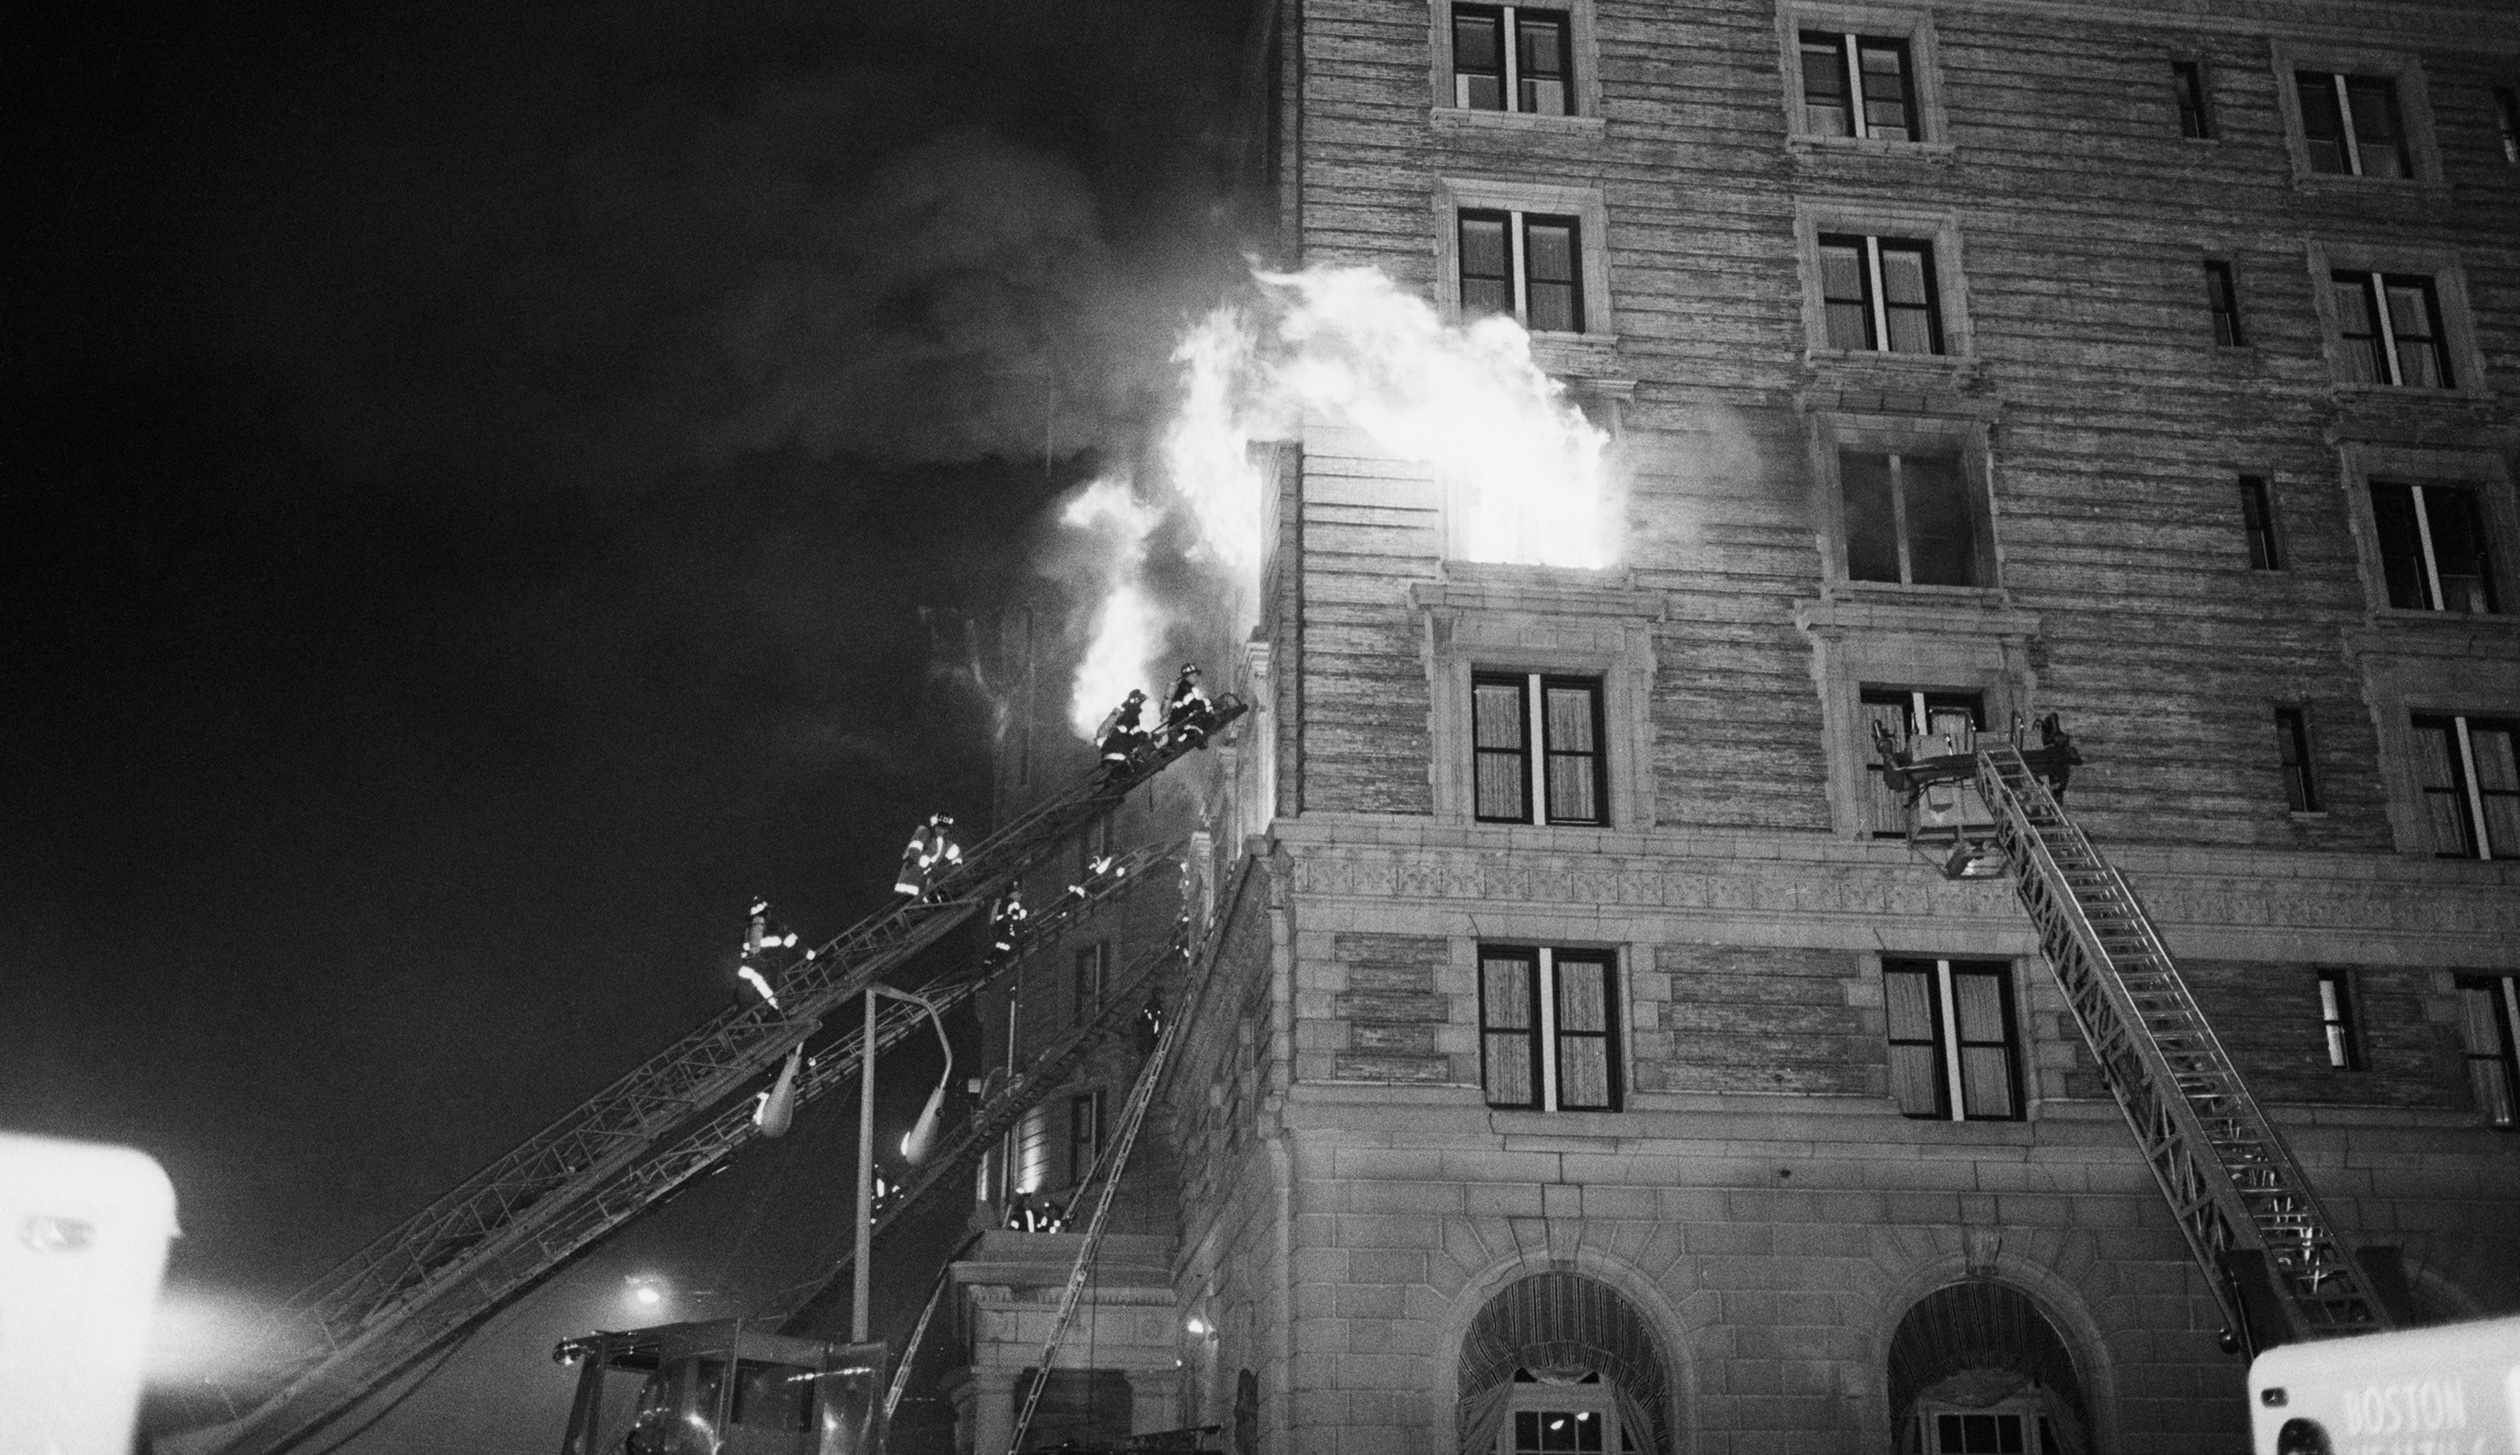 Firemen On Ladder At Flame-Engulfed Wind